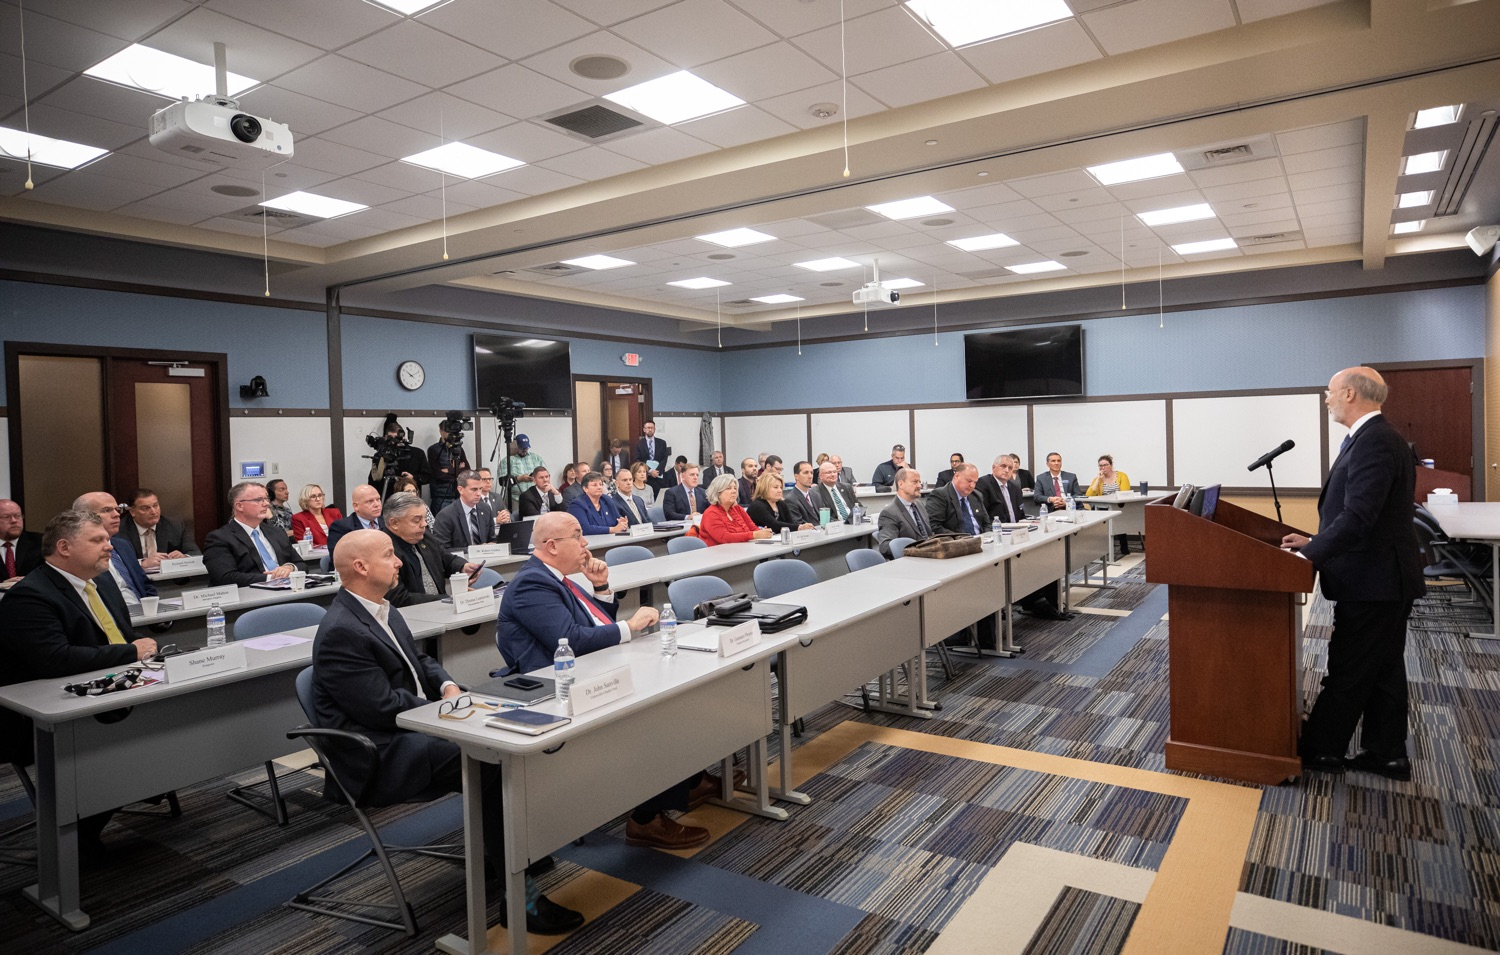 "<a href=""http://filesource.abacast.com/commonwealthofpa/photo/17598_gov_charter_schools_dz_003.jpg"" target=""_blank"">⇣ Download Photo<br></a>Pennsylvania Governor Tom Wolf speaks about charter school reform at a meeting of the Pennsylvania Association of School Administrators.  Governor Tom Wolfs commonsense plan to improve the educational quality of charter schools and control rising costs will save nearly $280 million a year, the governor told the Pennsylvania Association of School Administrators today. The governor has a three-part plan to fix Pennsylvanias charter school law which is regarded as one of the worst in the nation.  - Harrisburg, PA. Friday, November 15, 2019."